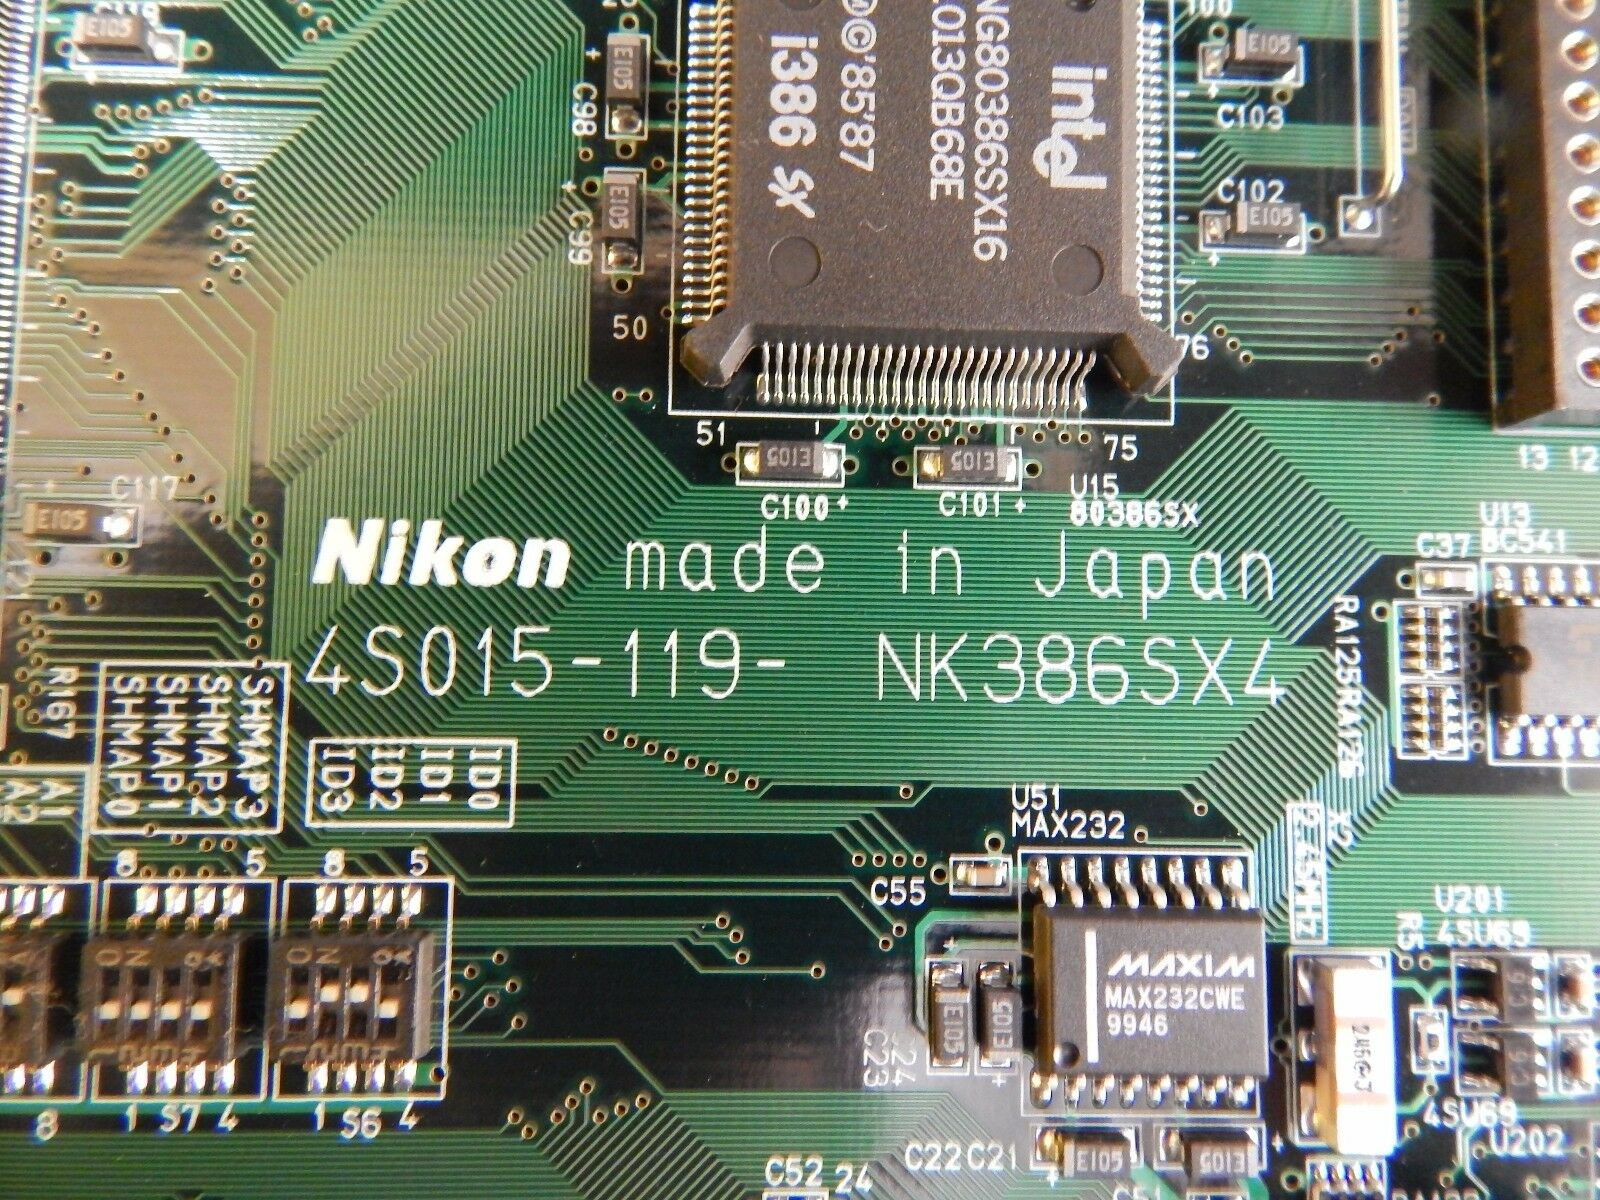 Nikon 4S015-119 Processor Board PCB NK386SX4 NSR-S307E DUV 300mm Used Working